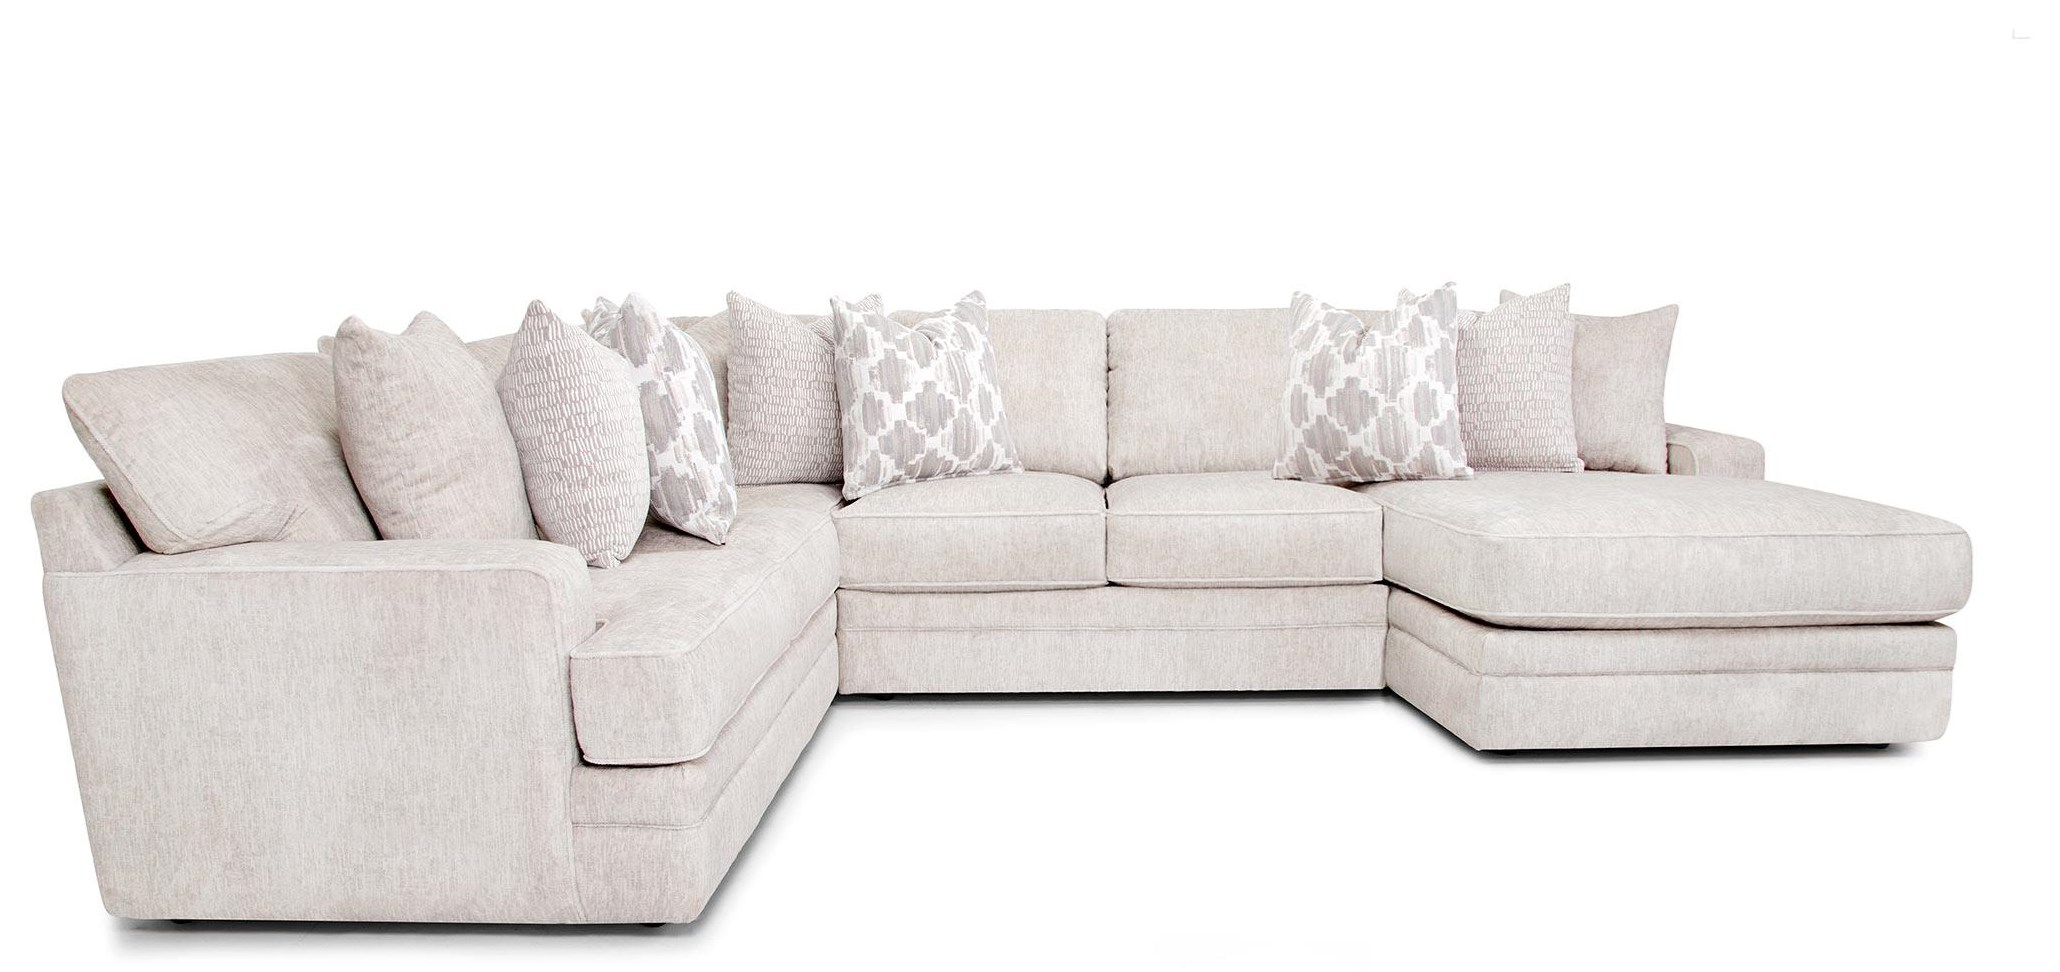 933 Adler Sectional Three Piece Sectional by Franklin at Furniture Fair - North Carolina